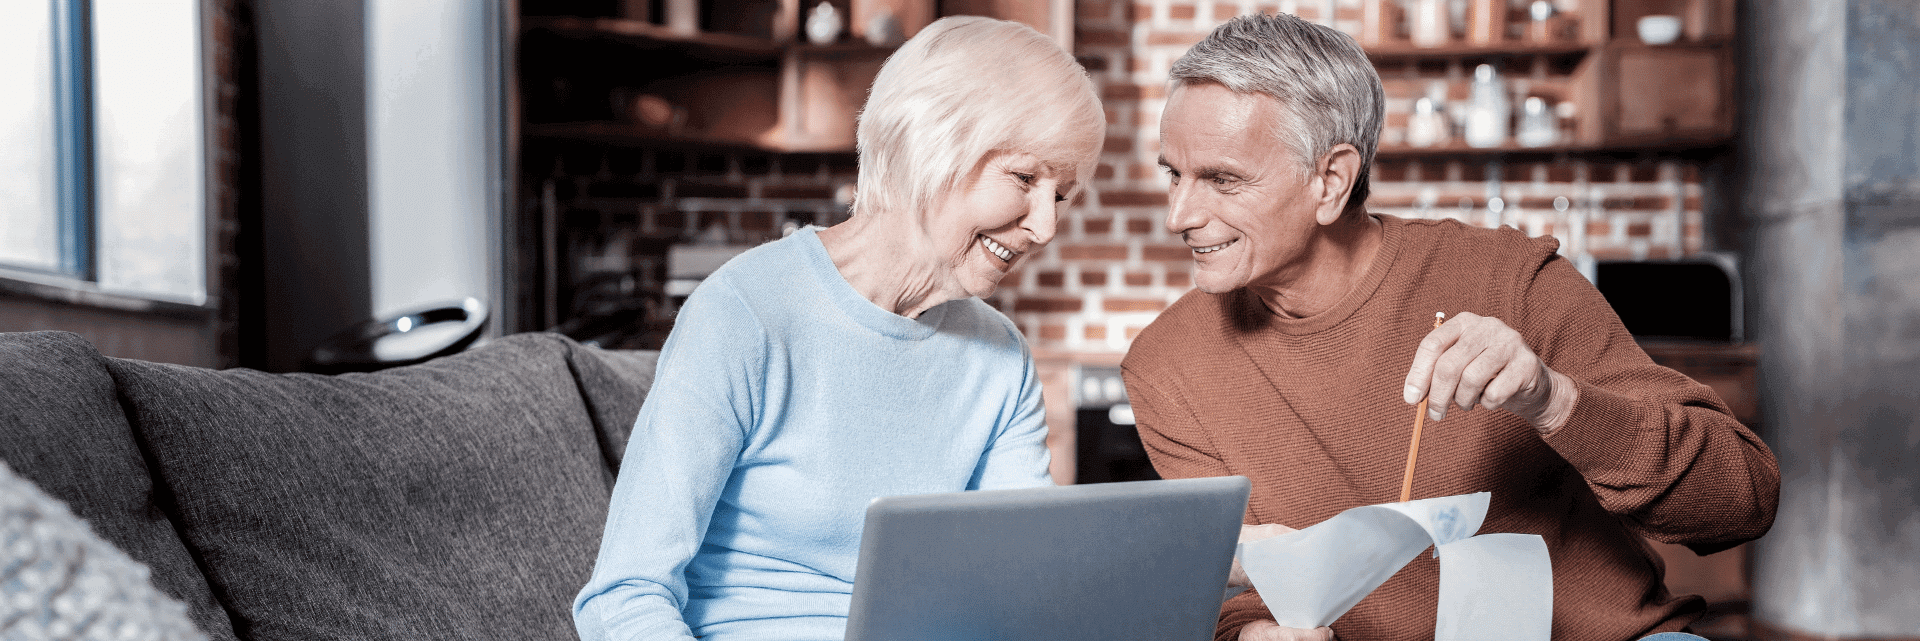 Find the best health insurance plan for pensioners